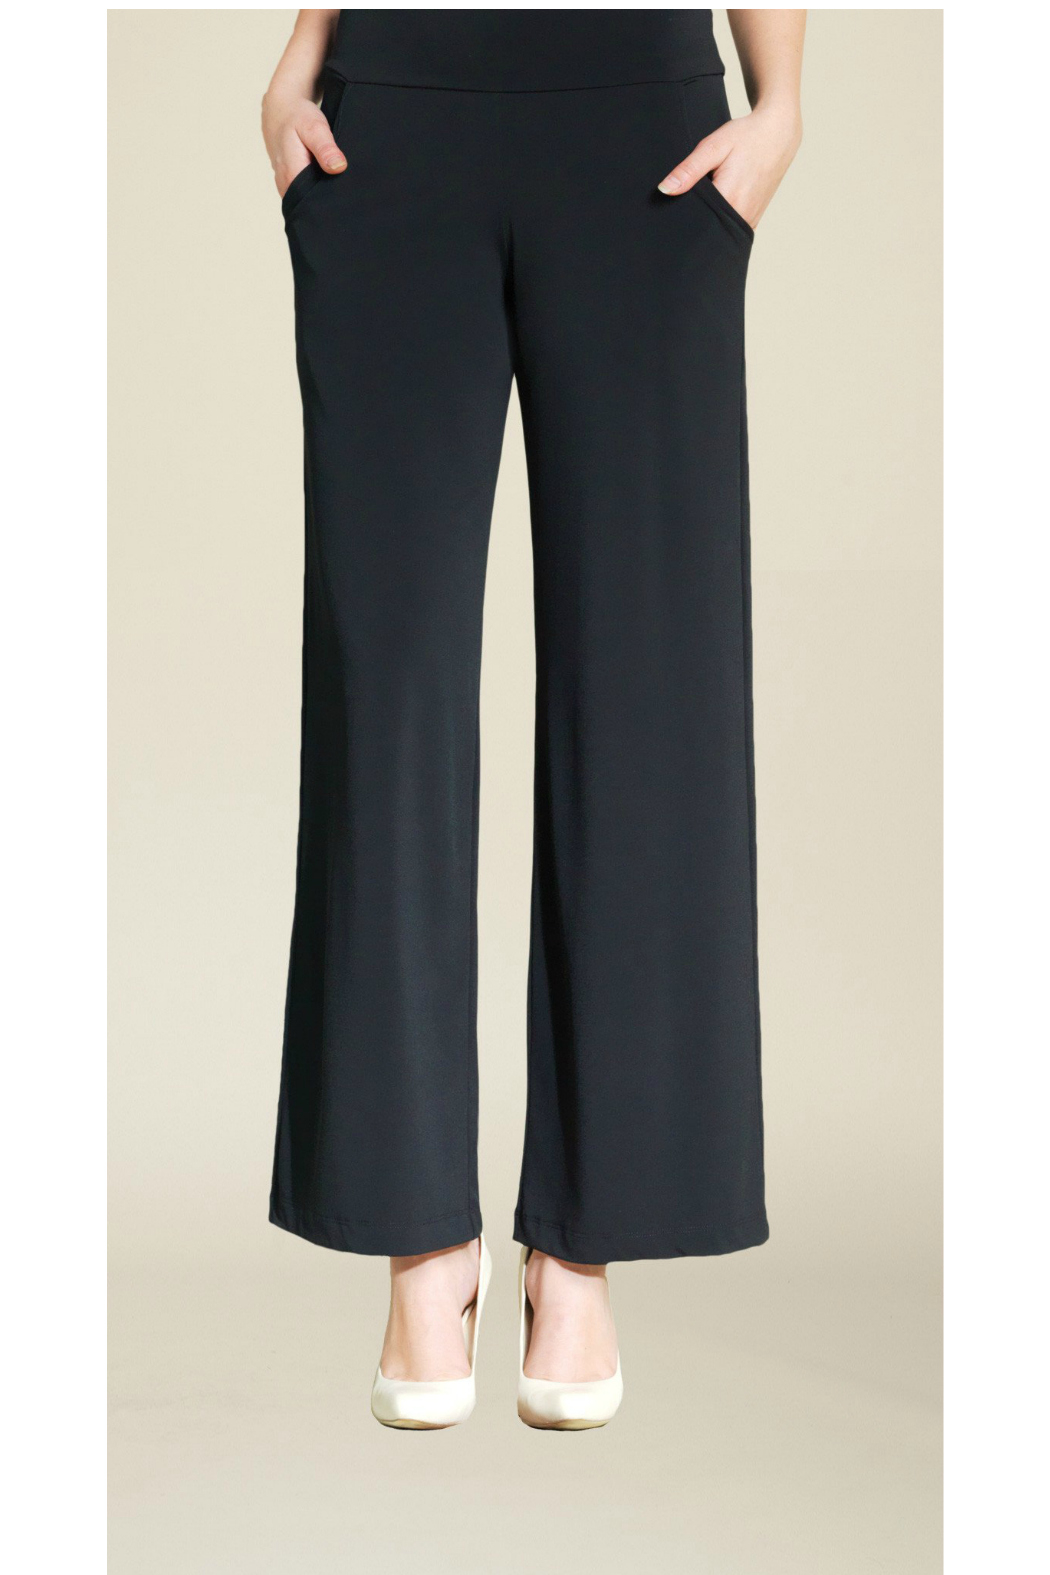 Clara Sunwoo Straight Pocket Pant - Main Image